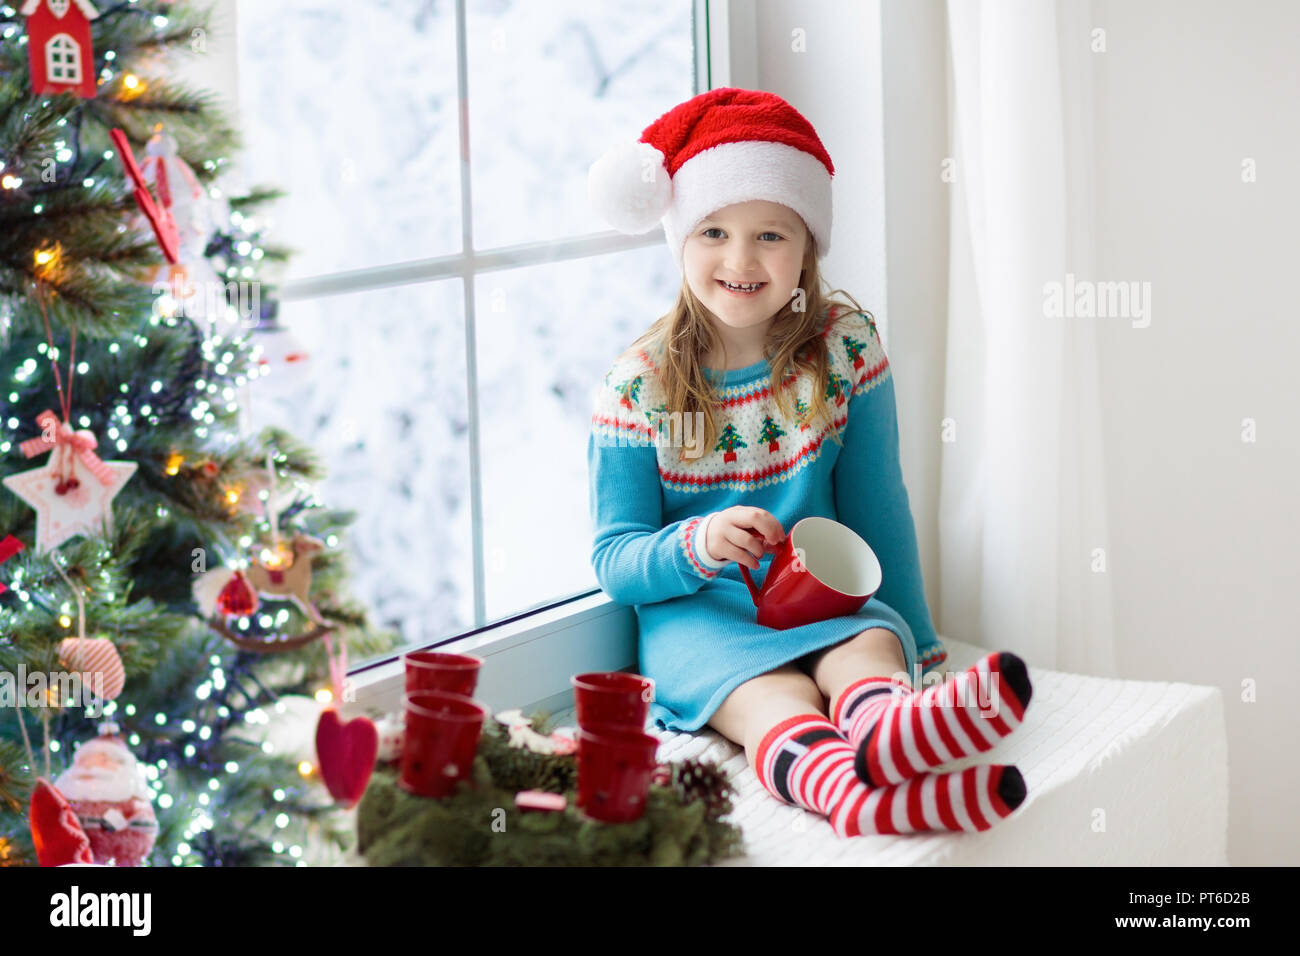 e2ab8316c24b Child drinking hot chocolate at Christmas tree at home. Decorated ...